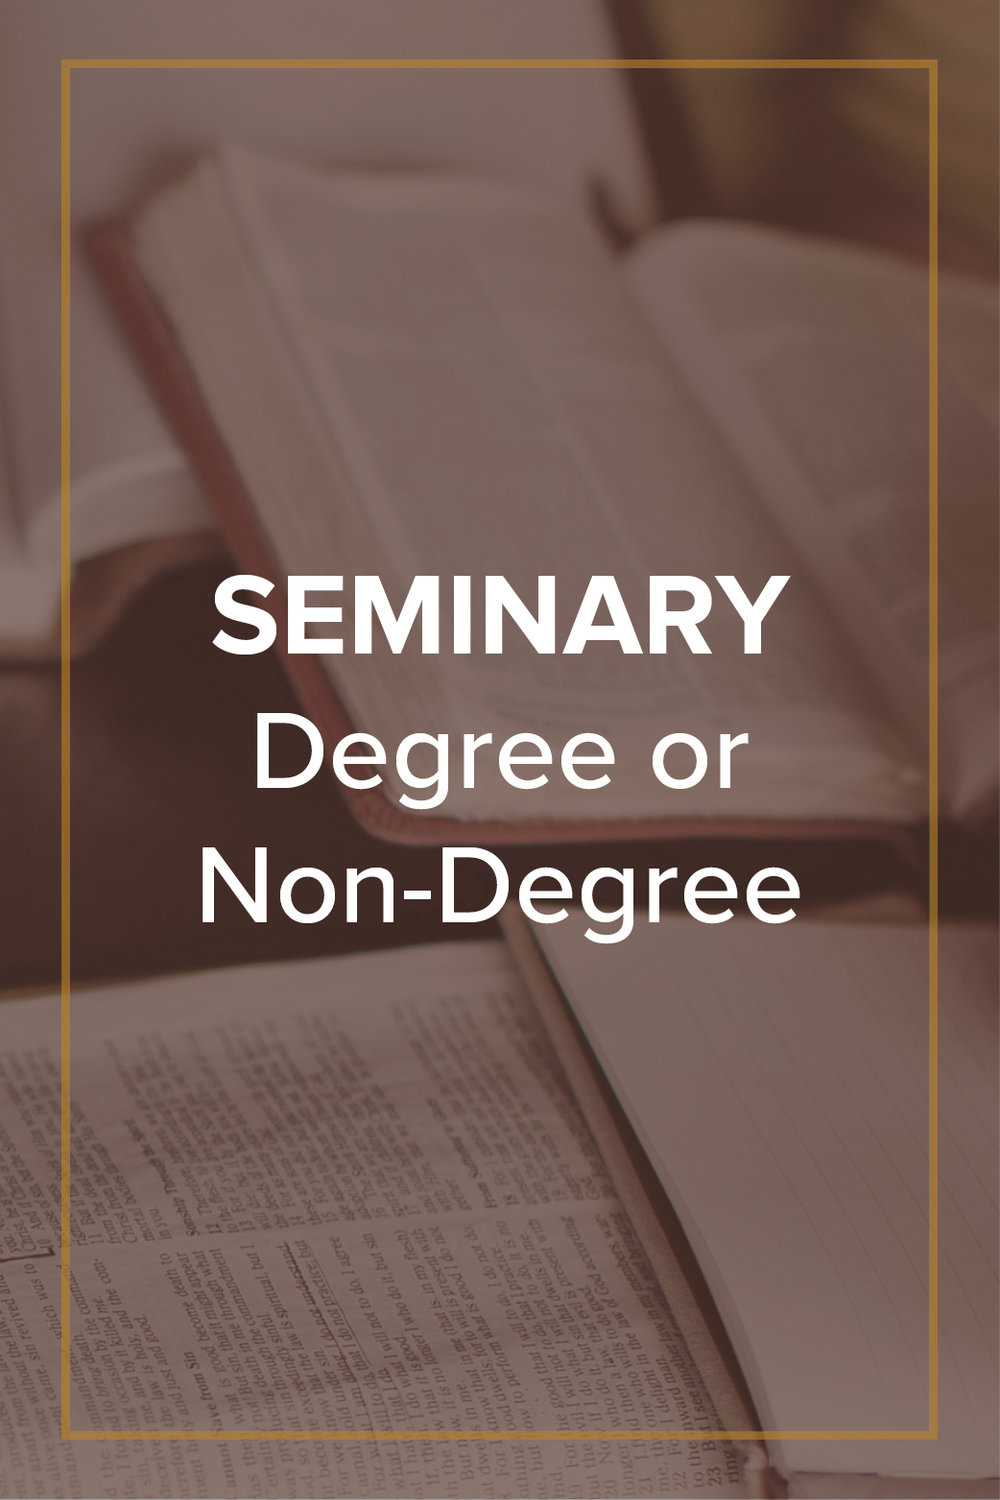 Seminary_graphic.jpg